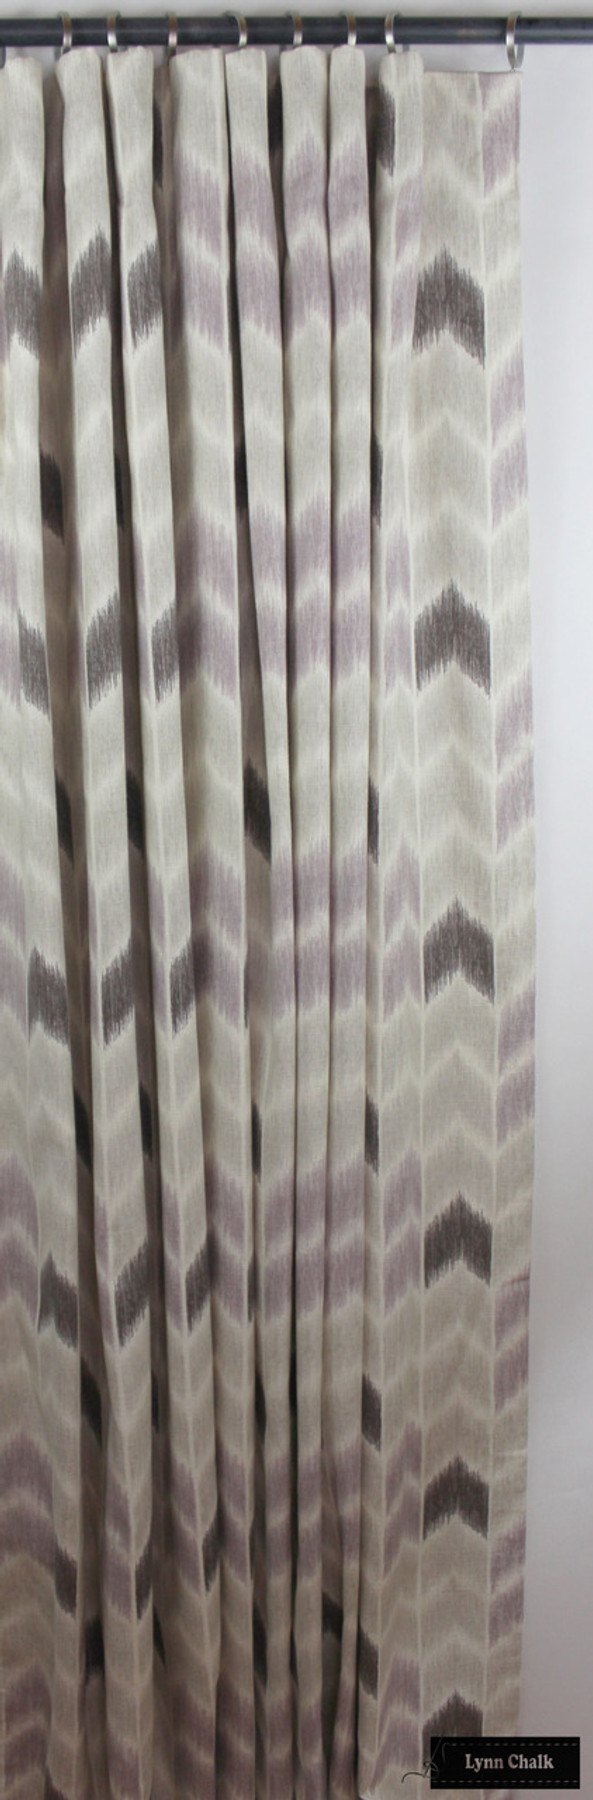 Custom Drapes in Fabricut Noho Lavender